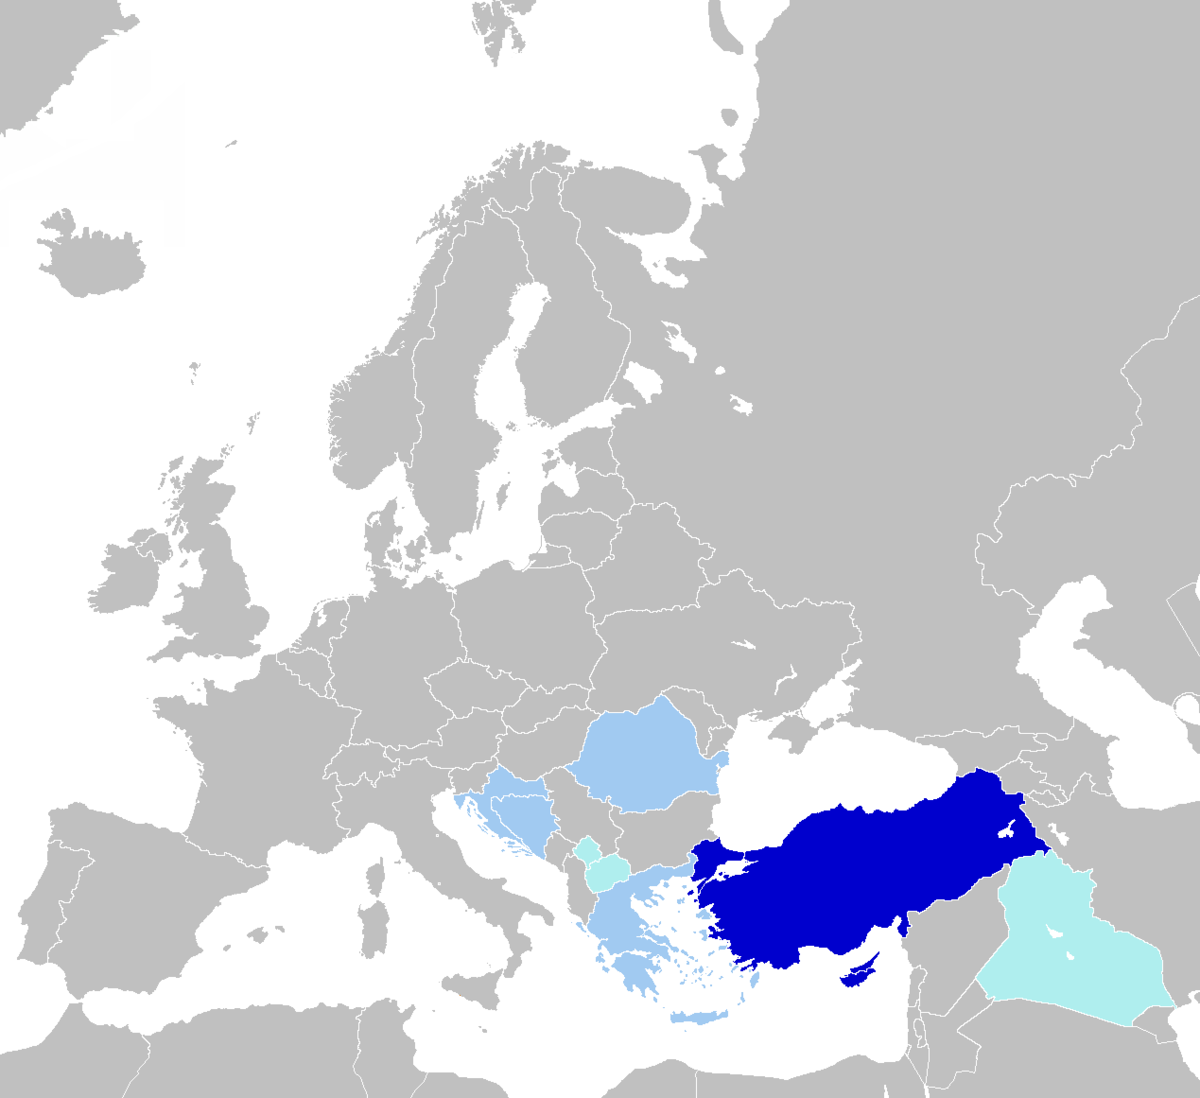 Turkish language - Wikipedia on world map of greece, world map of egypt, world map of diego garcia, world map of romania, world map of iran, world map of syria, world map of albania, world map of russia, world map of british territory, world map of iraq, world map of aleutian islands, world map of gaza, world map of morocco, world map of us virgin islands, world map of china, world map of jordan, world map of maldives, world map of peru, world map of the himalayas, world map of singapore,